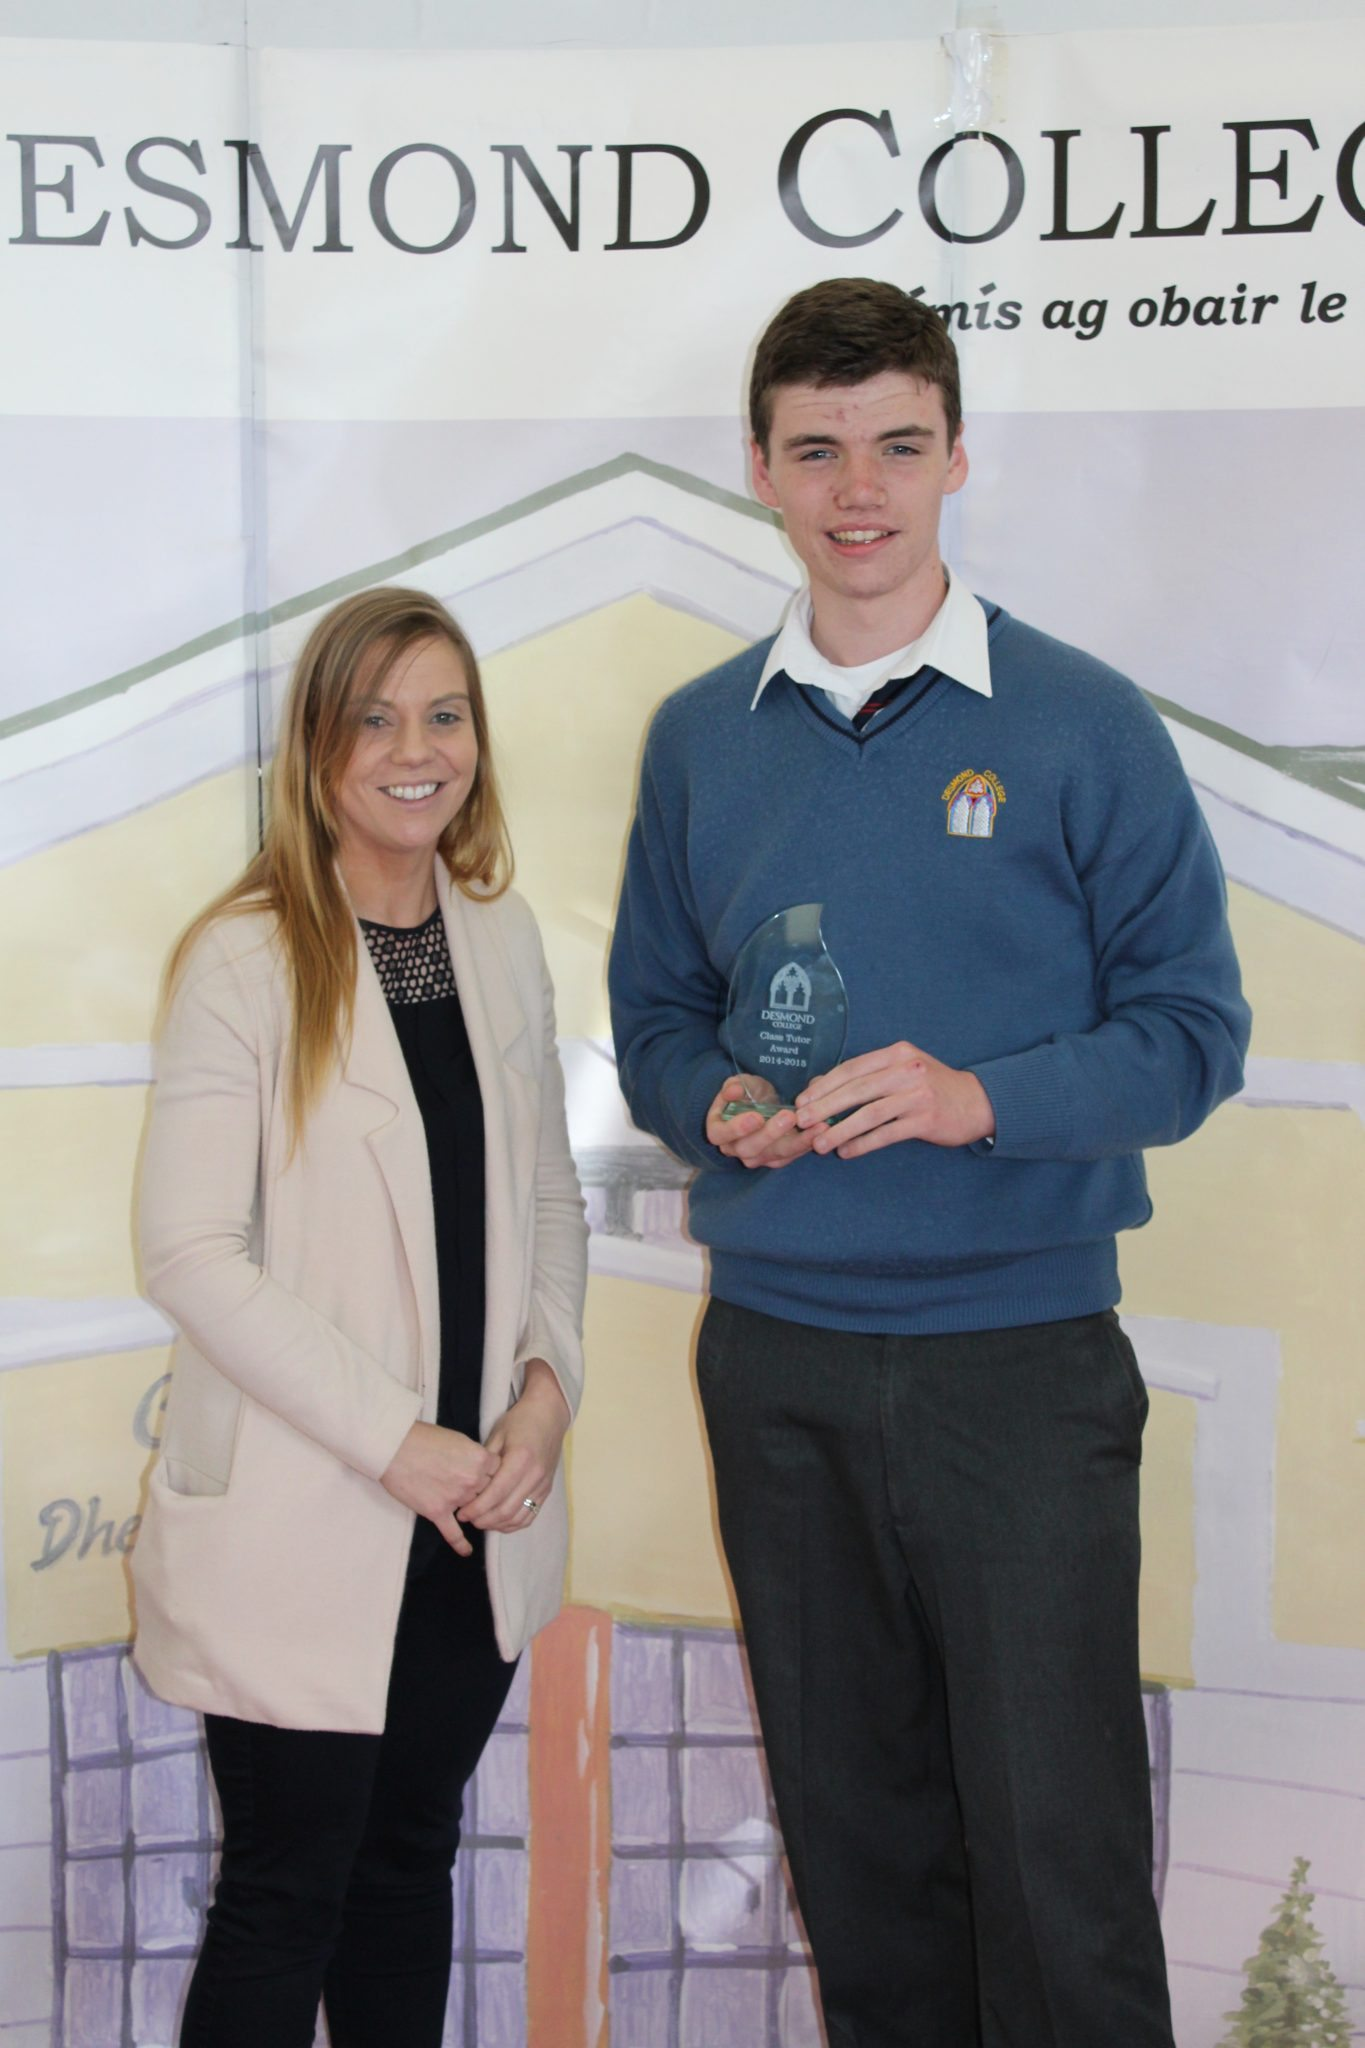 Desmond College Student Awards: May 2015: TUTOR AWARDS 3rd Year : Ms Corkery with Mark Cahill